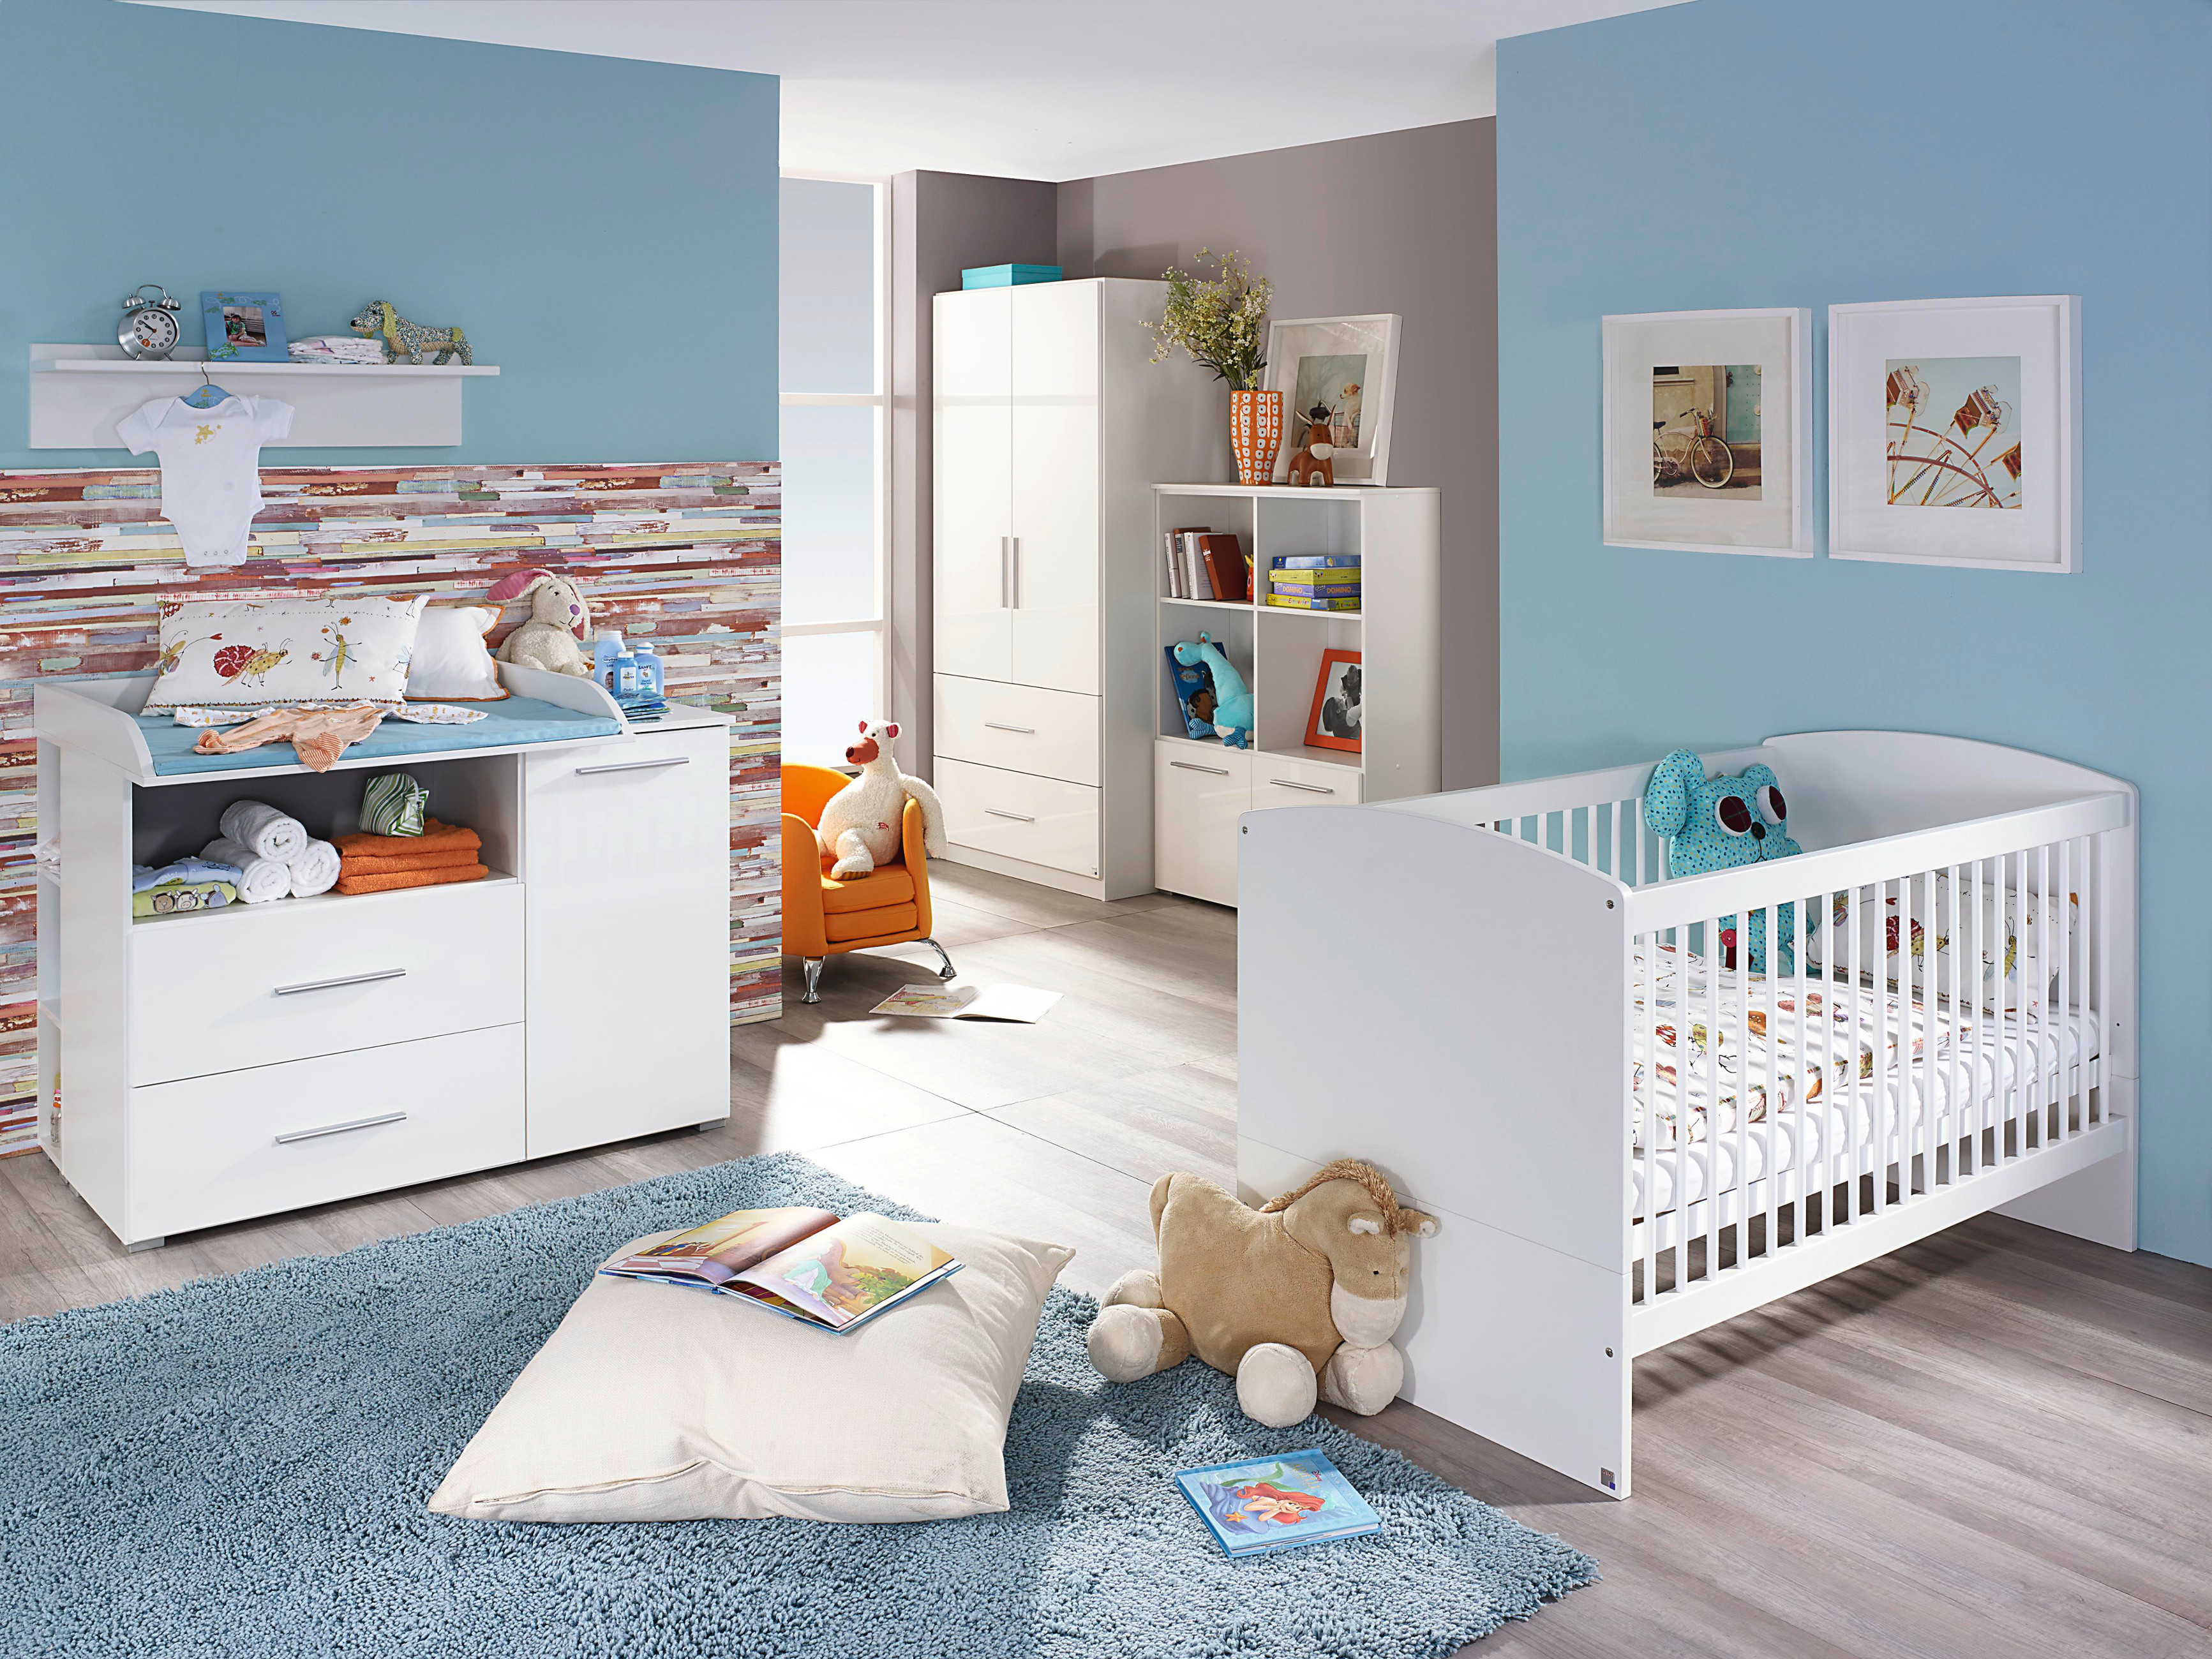 rauch babyzimmer komplettangebot 7 teilig alpinwei hochglanz wei ebay. Black Bedroom Furniture Sets. Home Design Ideas